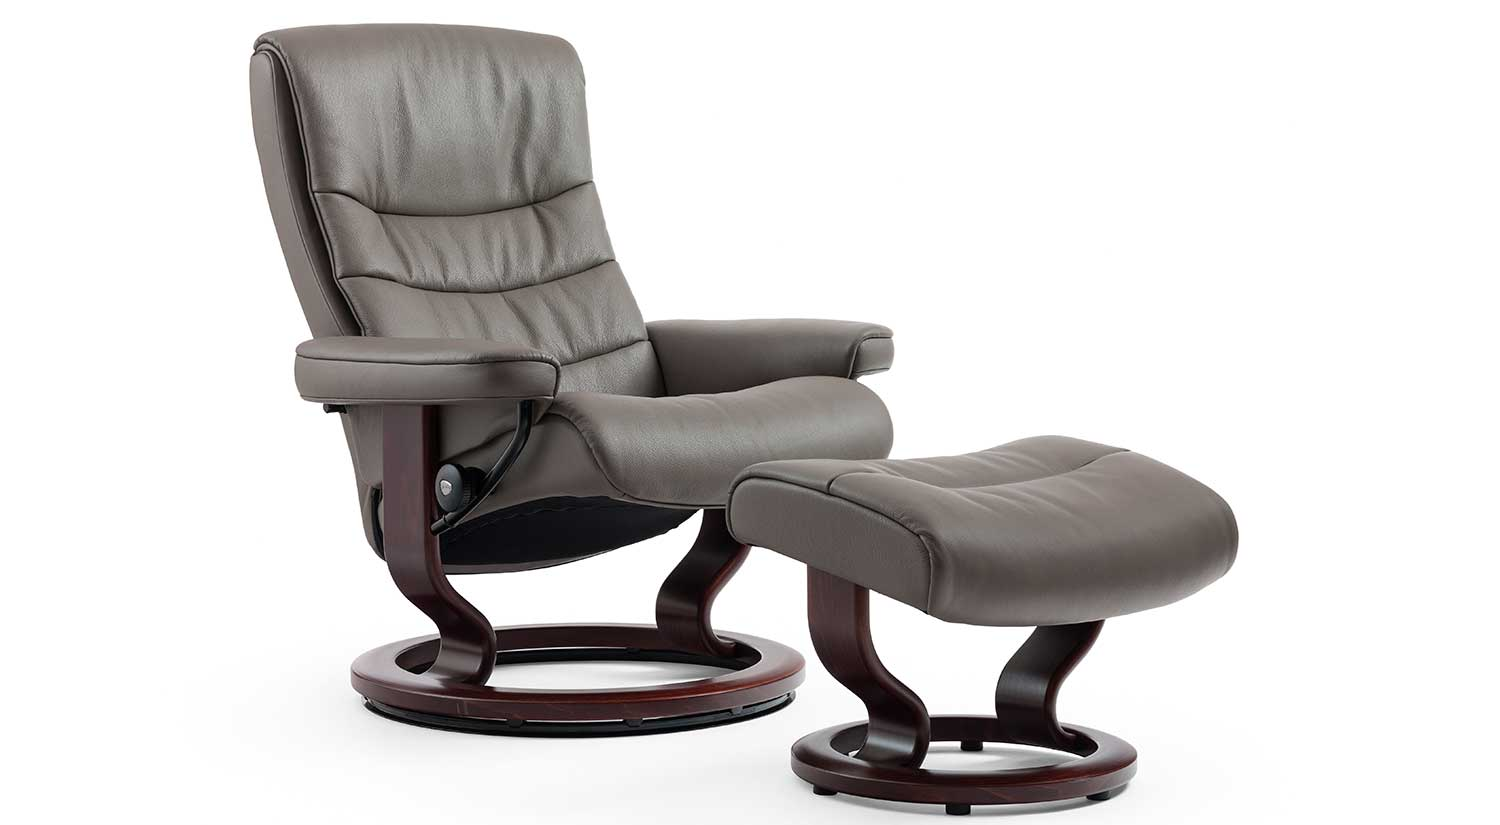 Circle Furniture Nordic Stressless Chair Leather Chairs And